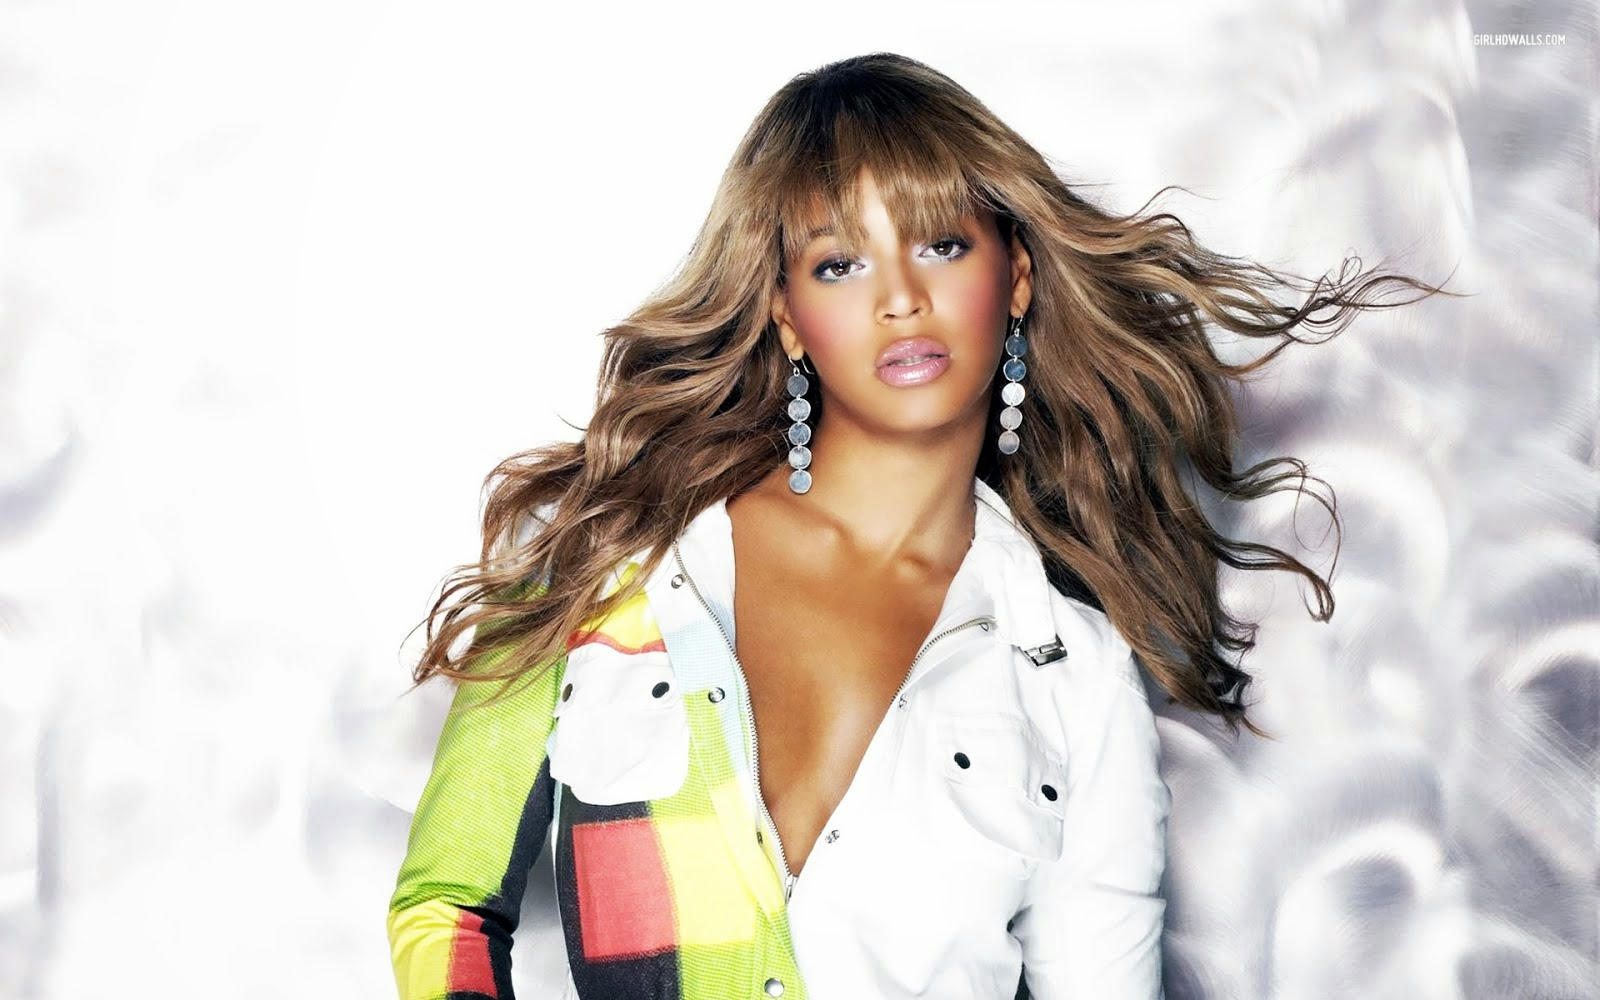 Beyonce Knowles Widescreen HD Wallpapers | Download Free High Definition Desktop Backgrounds